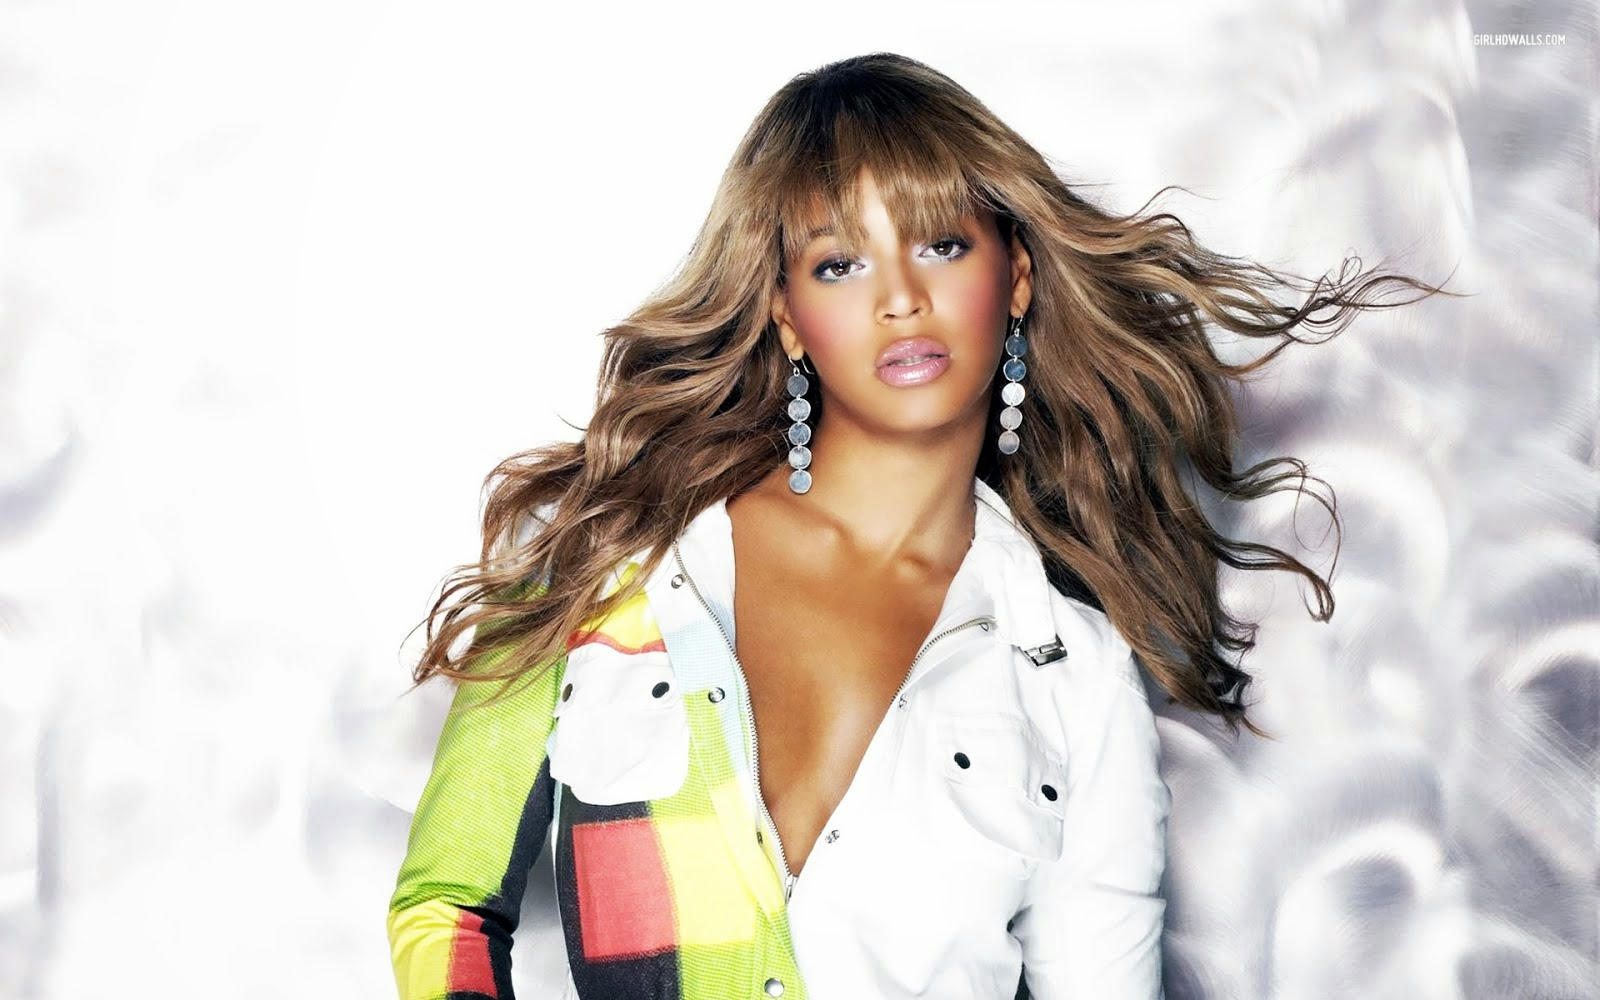 Beyonce Knowles Widescreen HD Wallpapers | Download Free High Definition Desktop Backgrounds